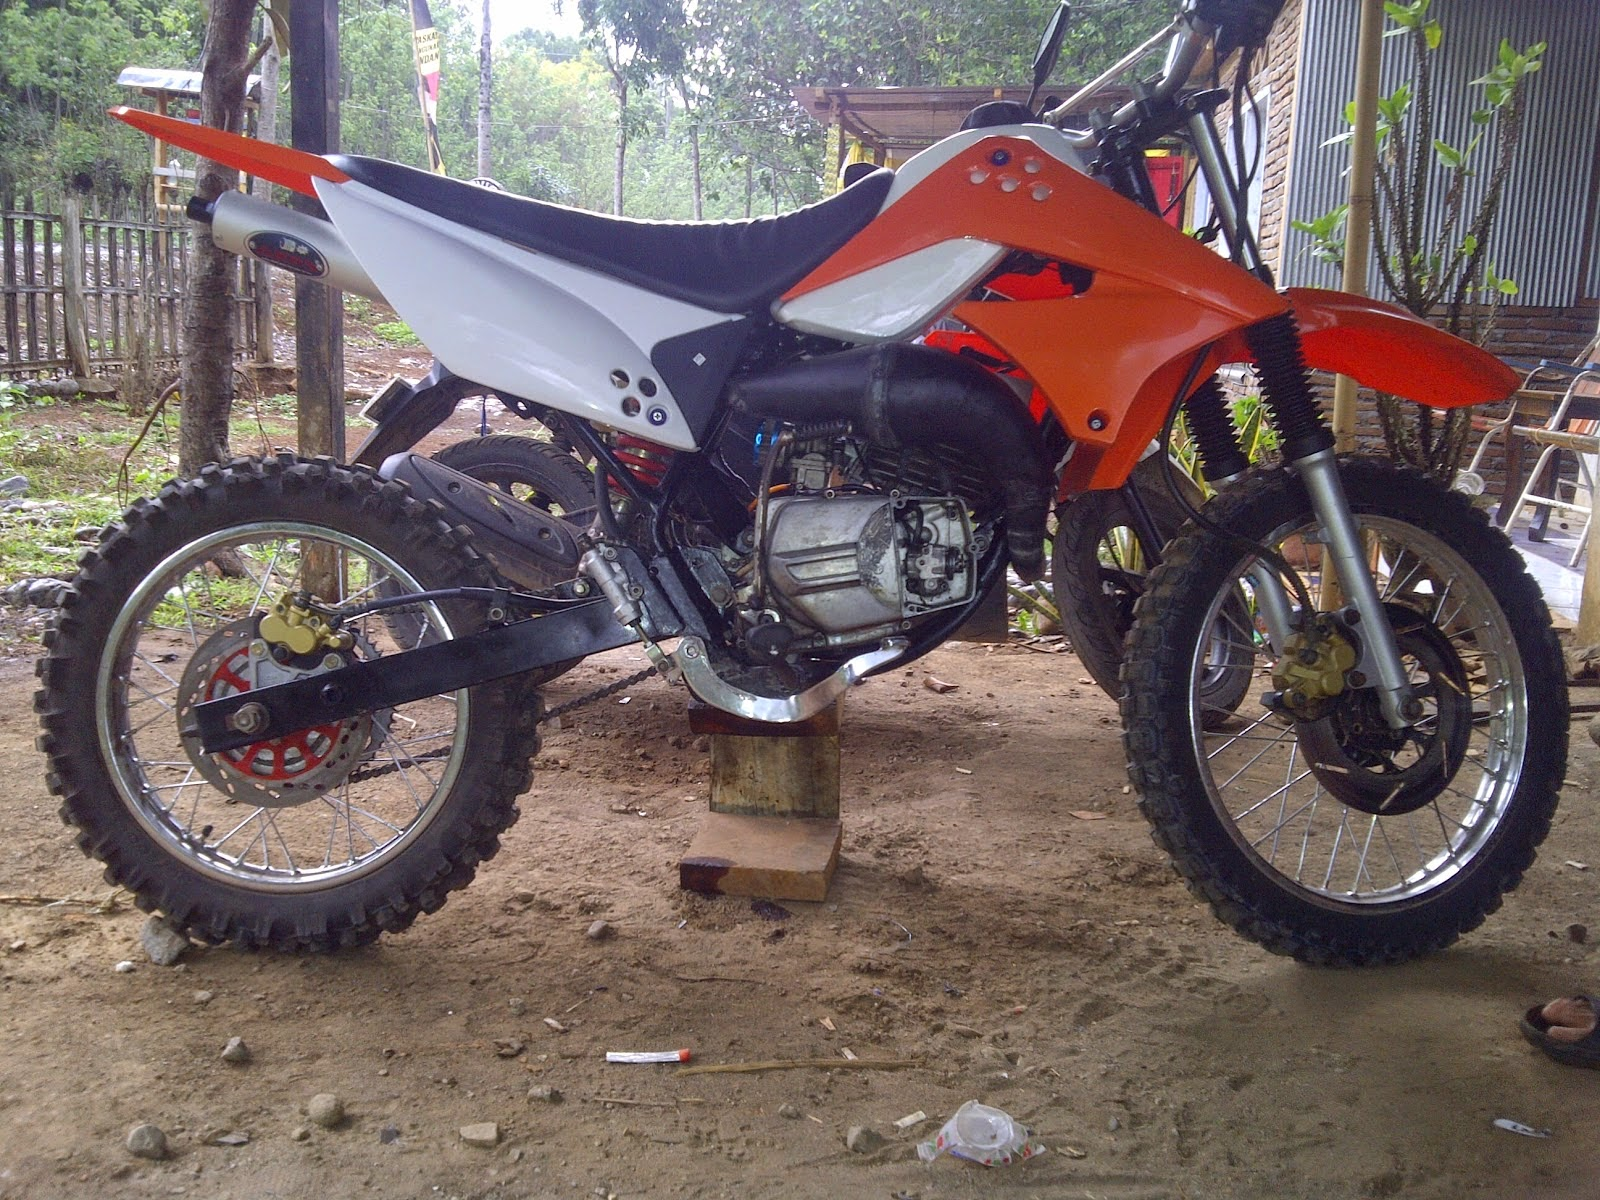 Modifikasi Kawasaki Trail Klx 250 Modifikasi Kawasaki Trail Klx